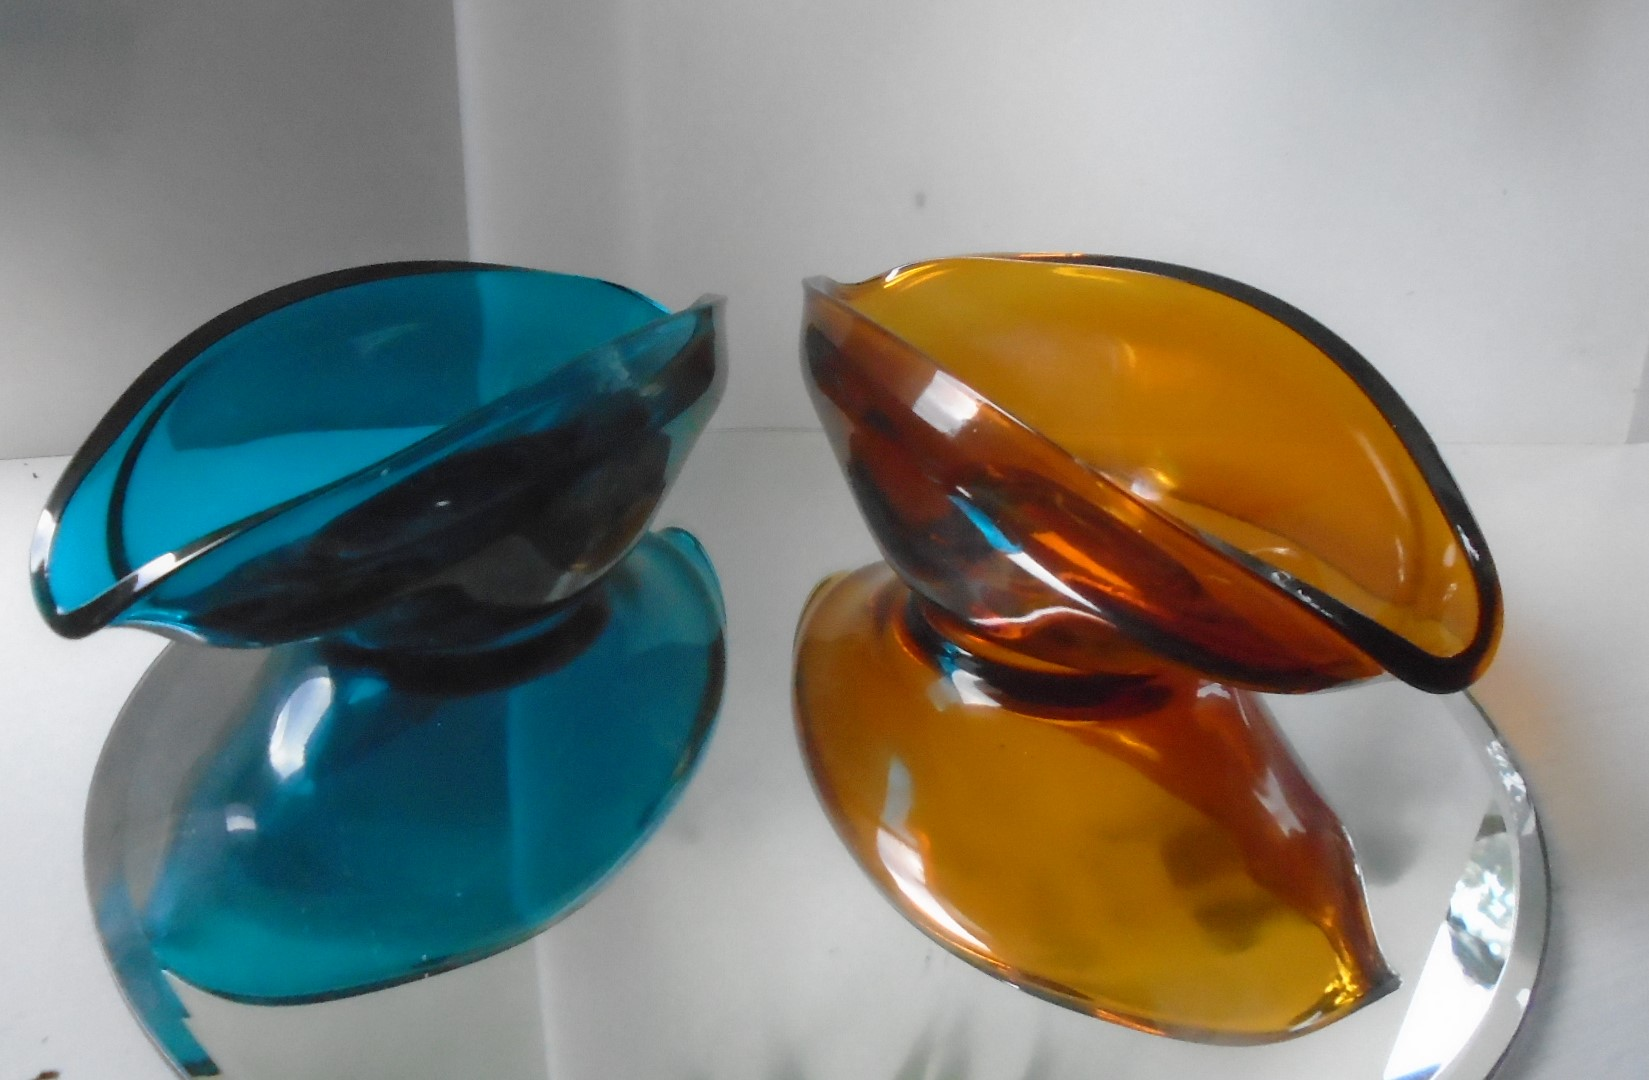 Pair of English Maker Sowerby 60s vintage boat shaped bowls in Amber and Petrol Blue Pattern No.2802.